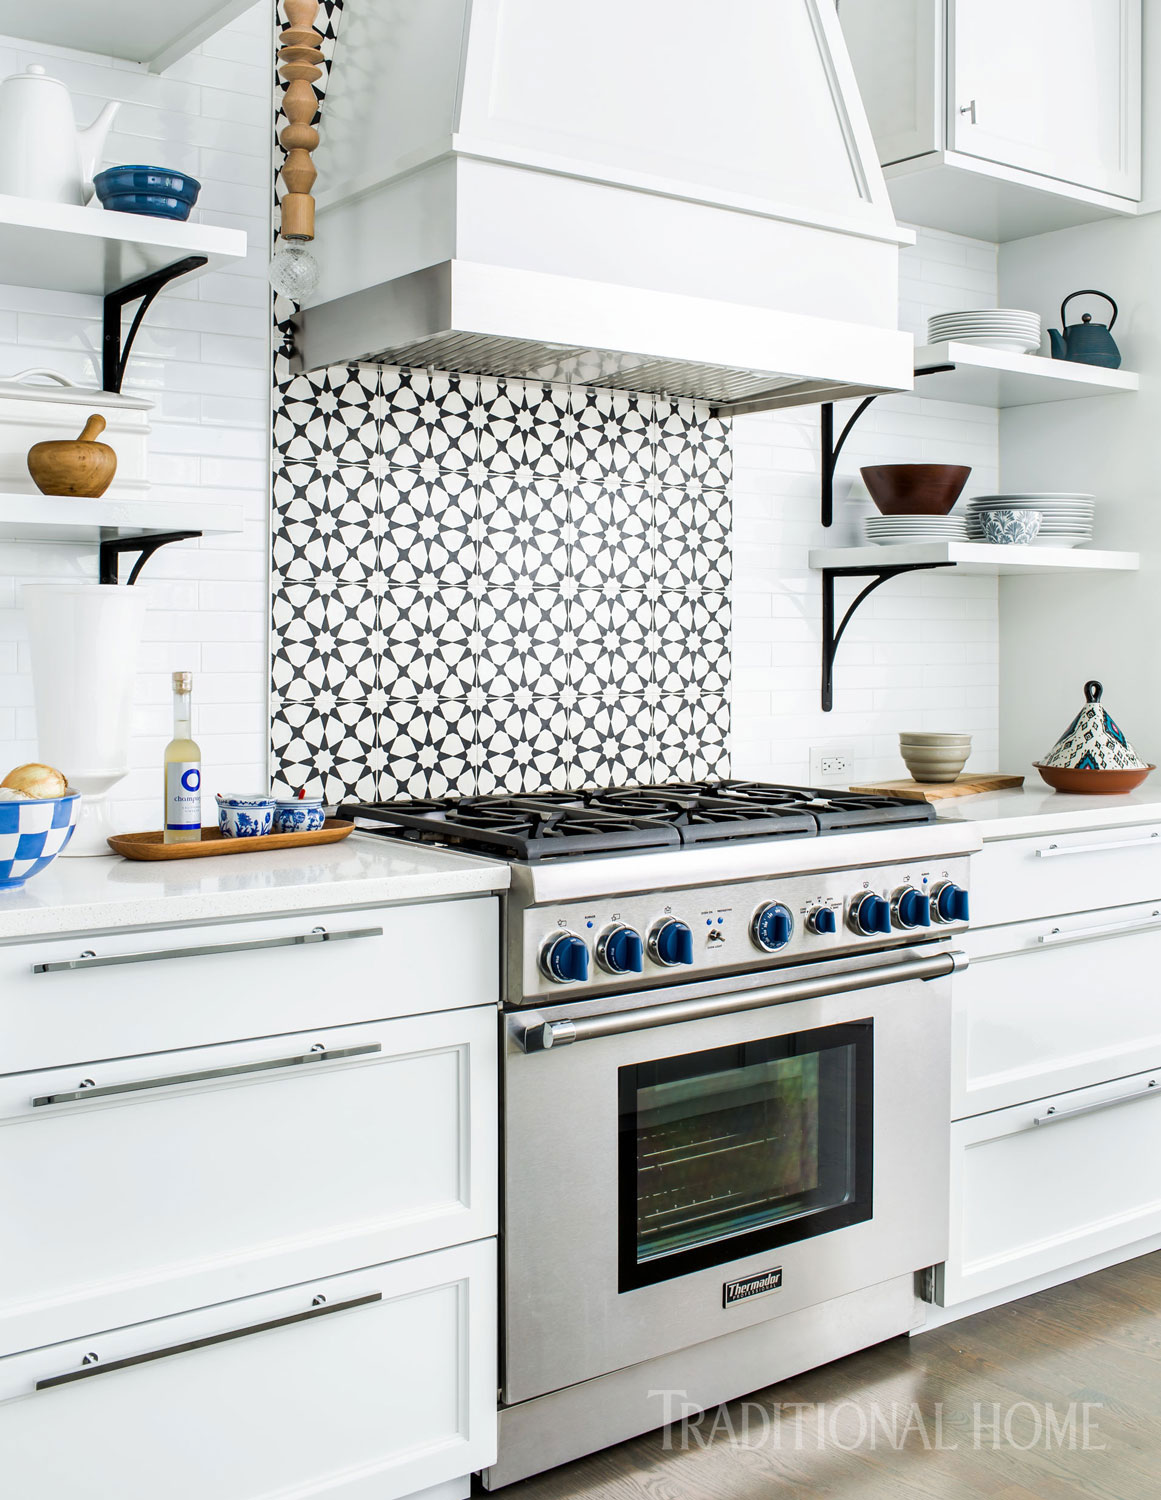 The custom vent hood above the Thermador range is mostly wood with a band of stainless steel closest to the heat. The patterned concrete backsplash tiles have color that goes all the way through. Come see 36 Best Beautiful Blue and White Kitchens to Love! #blueandwhite #bluekitchen #kitchendesign #kitchendecor #decorinspiration #beautifulkitchen